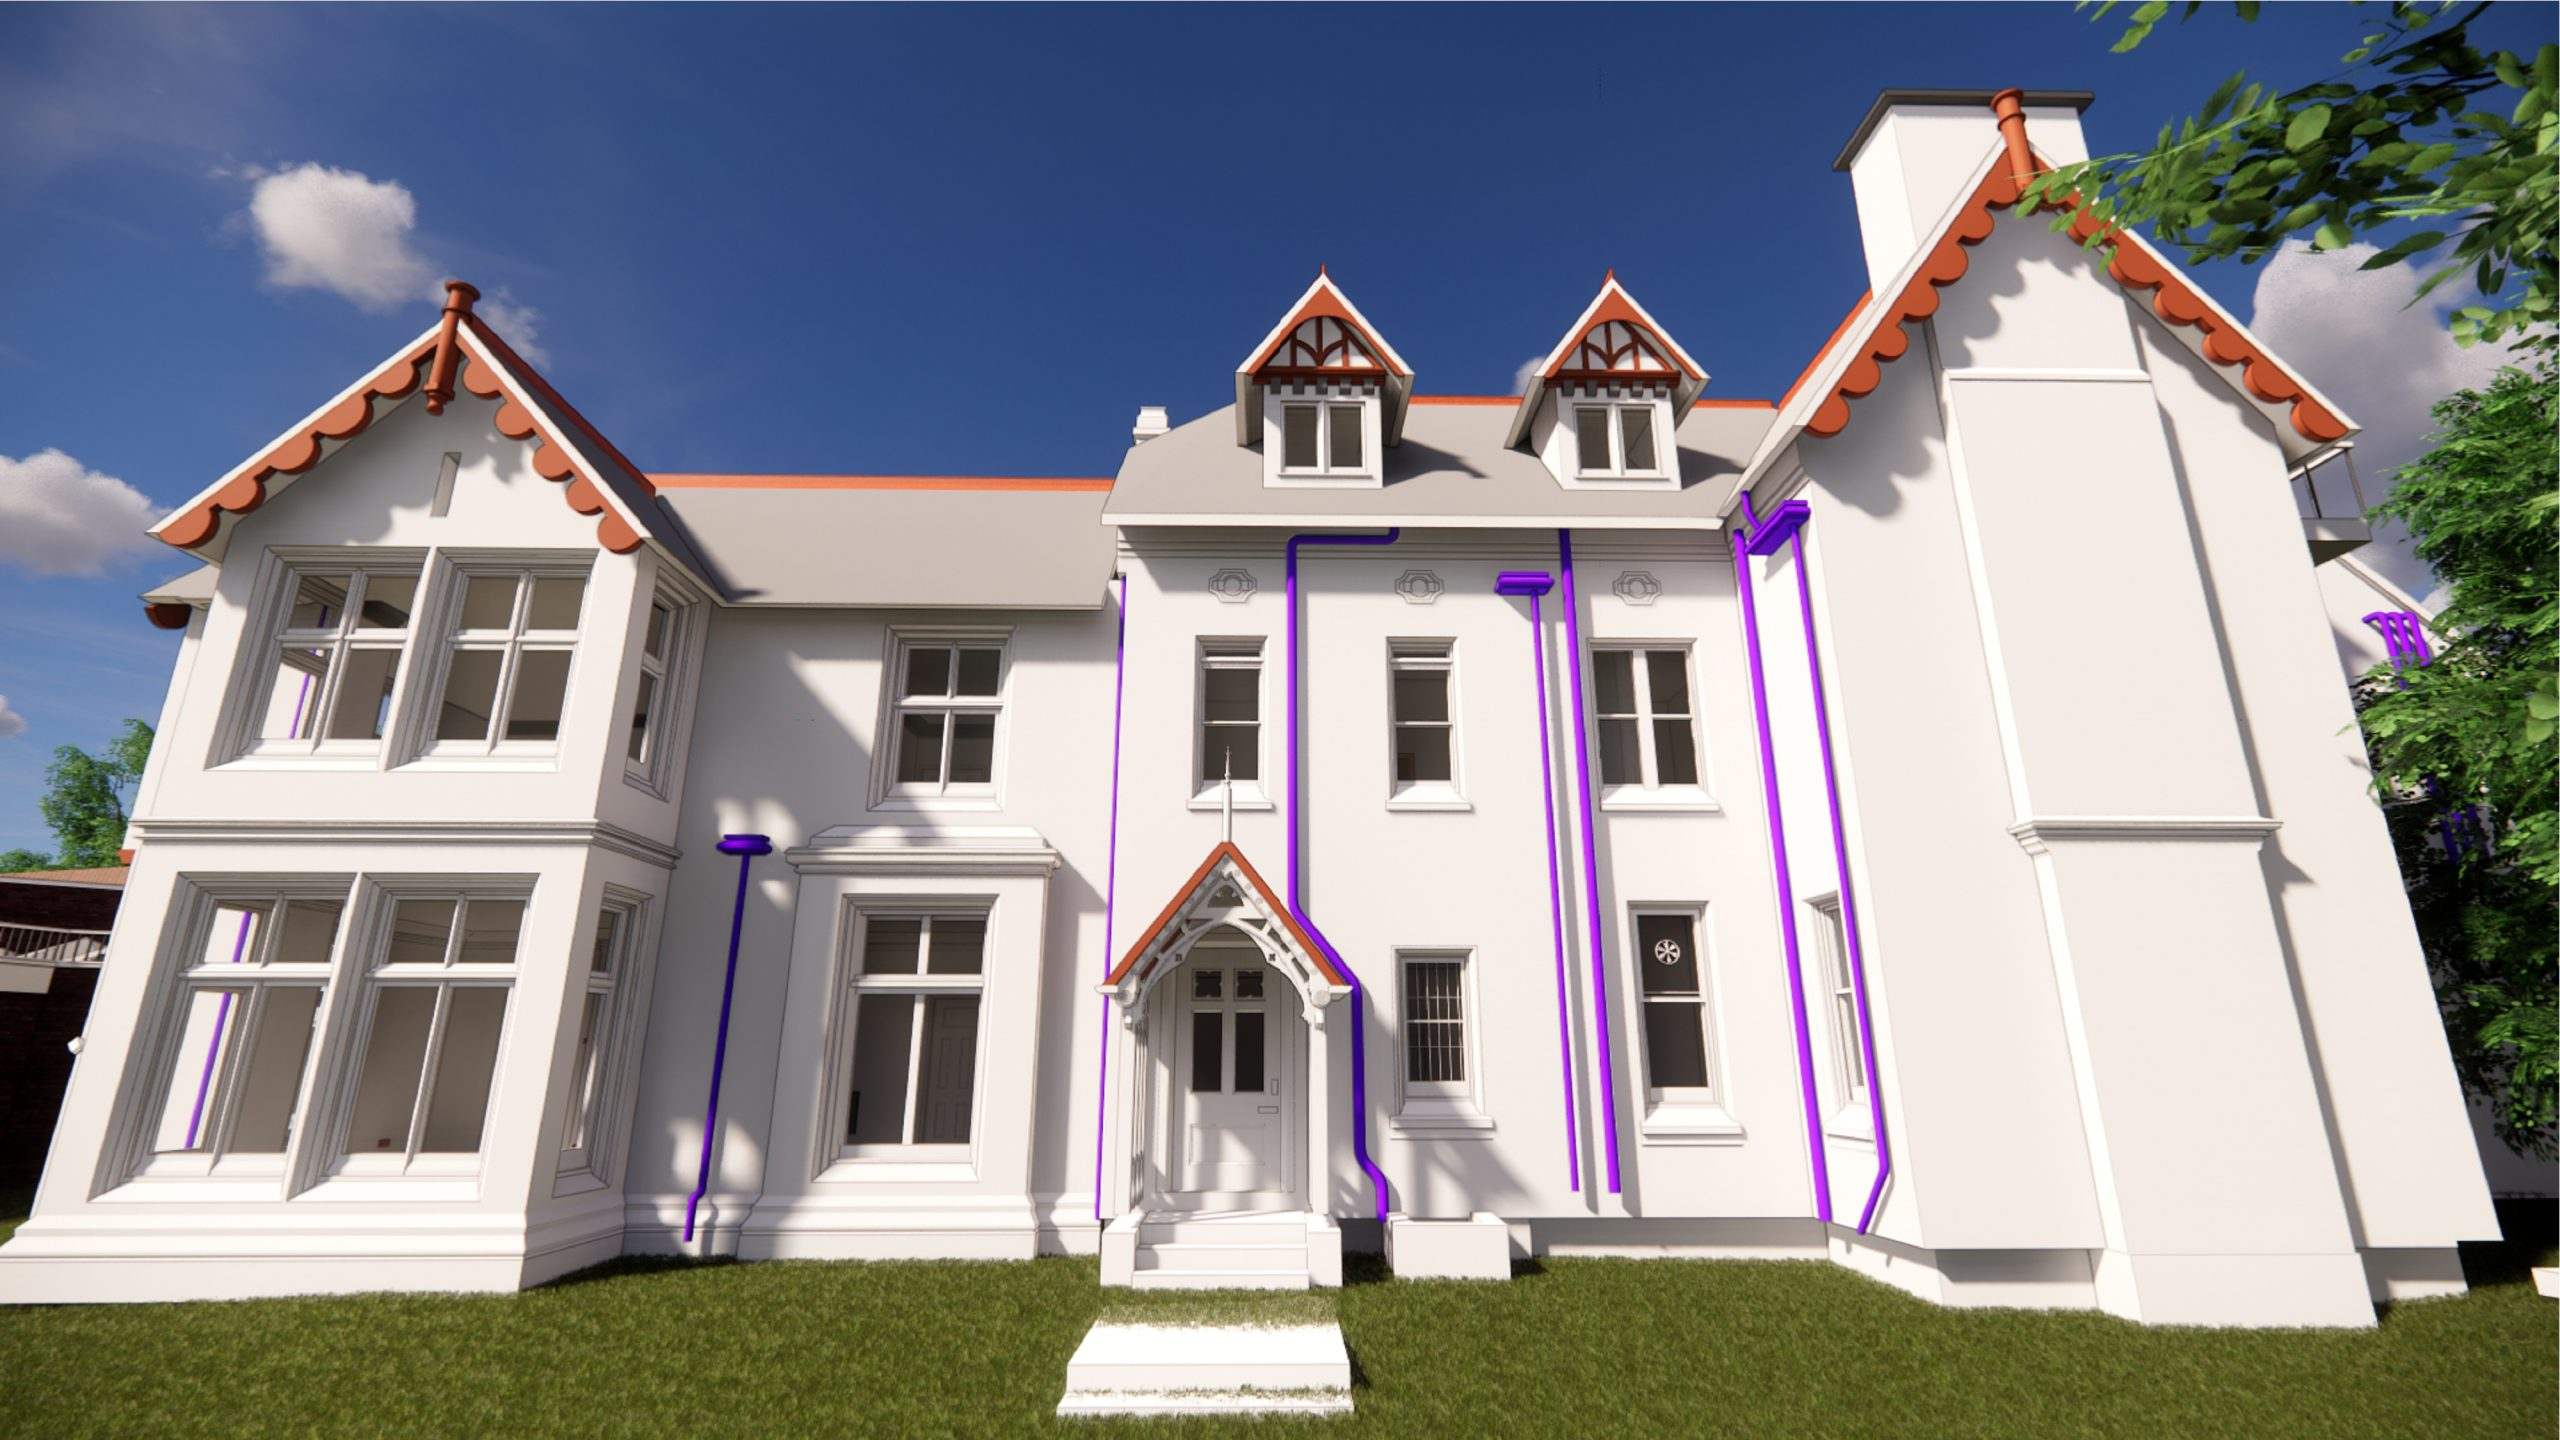 Leicester University 3d rendering with utilities